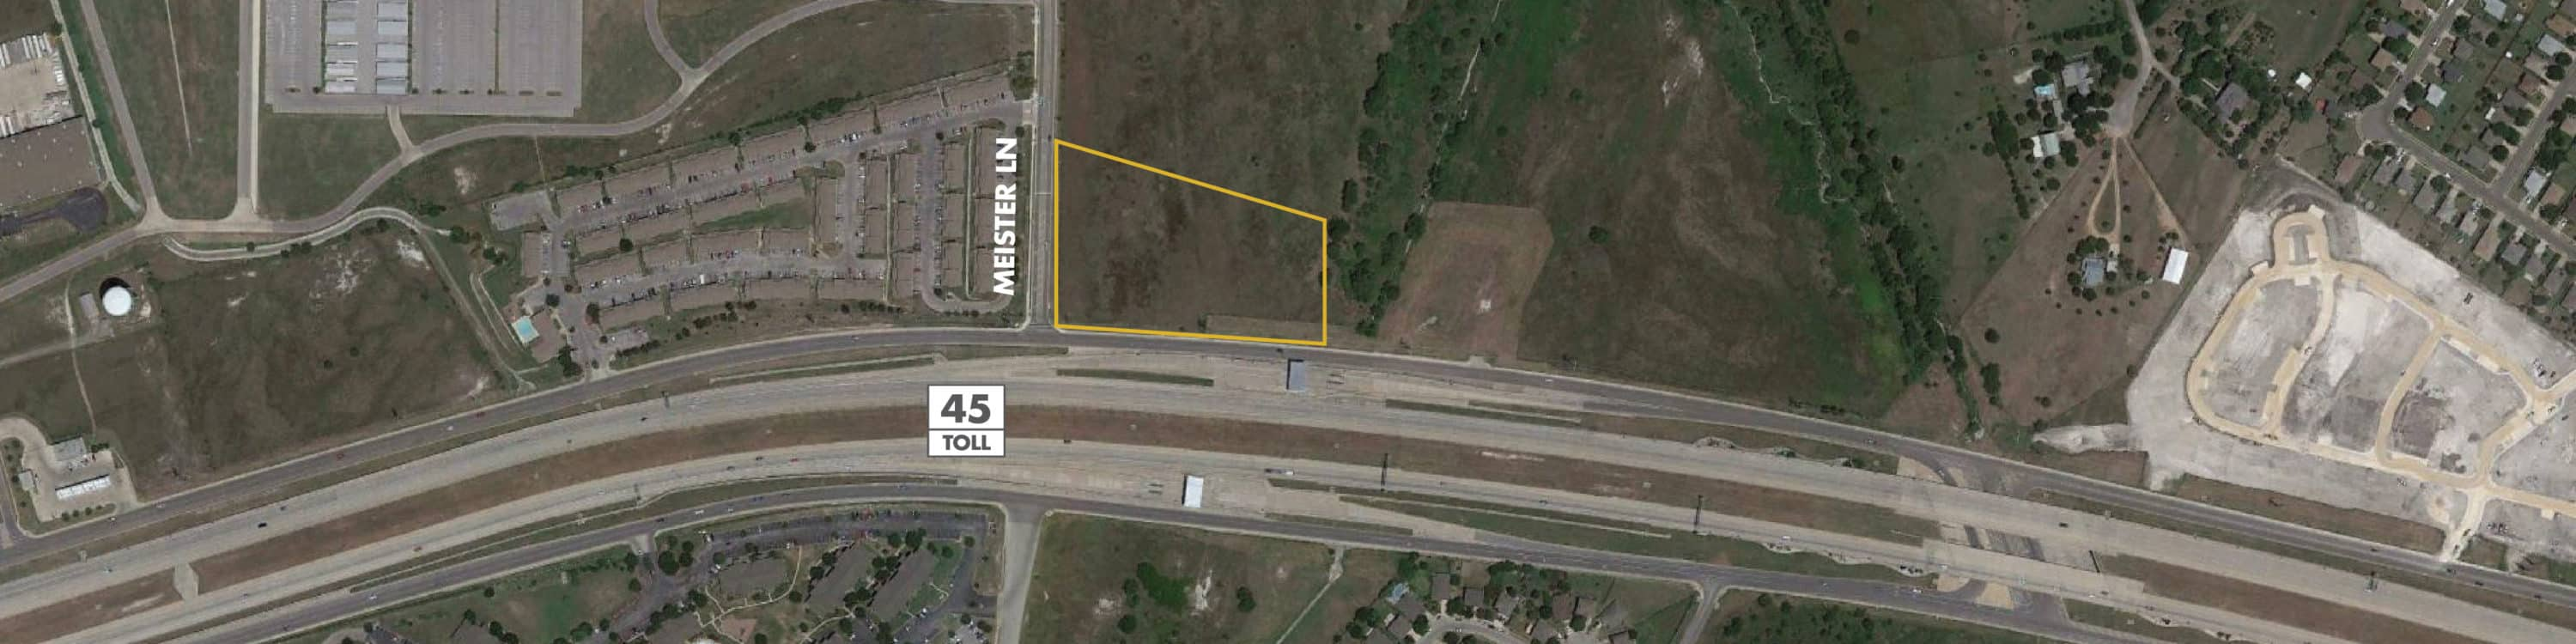 SH 45 & Meister Lane Land   Land for Sale in Round Rock, Texas